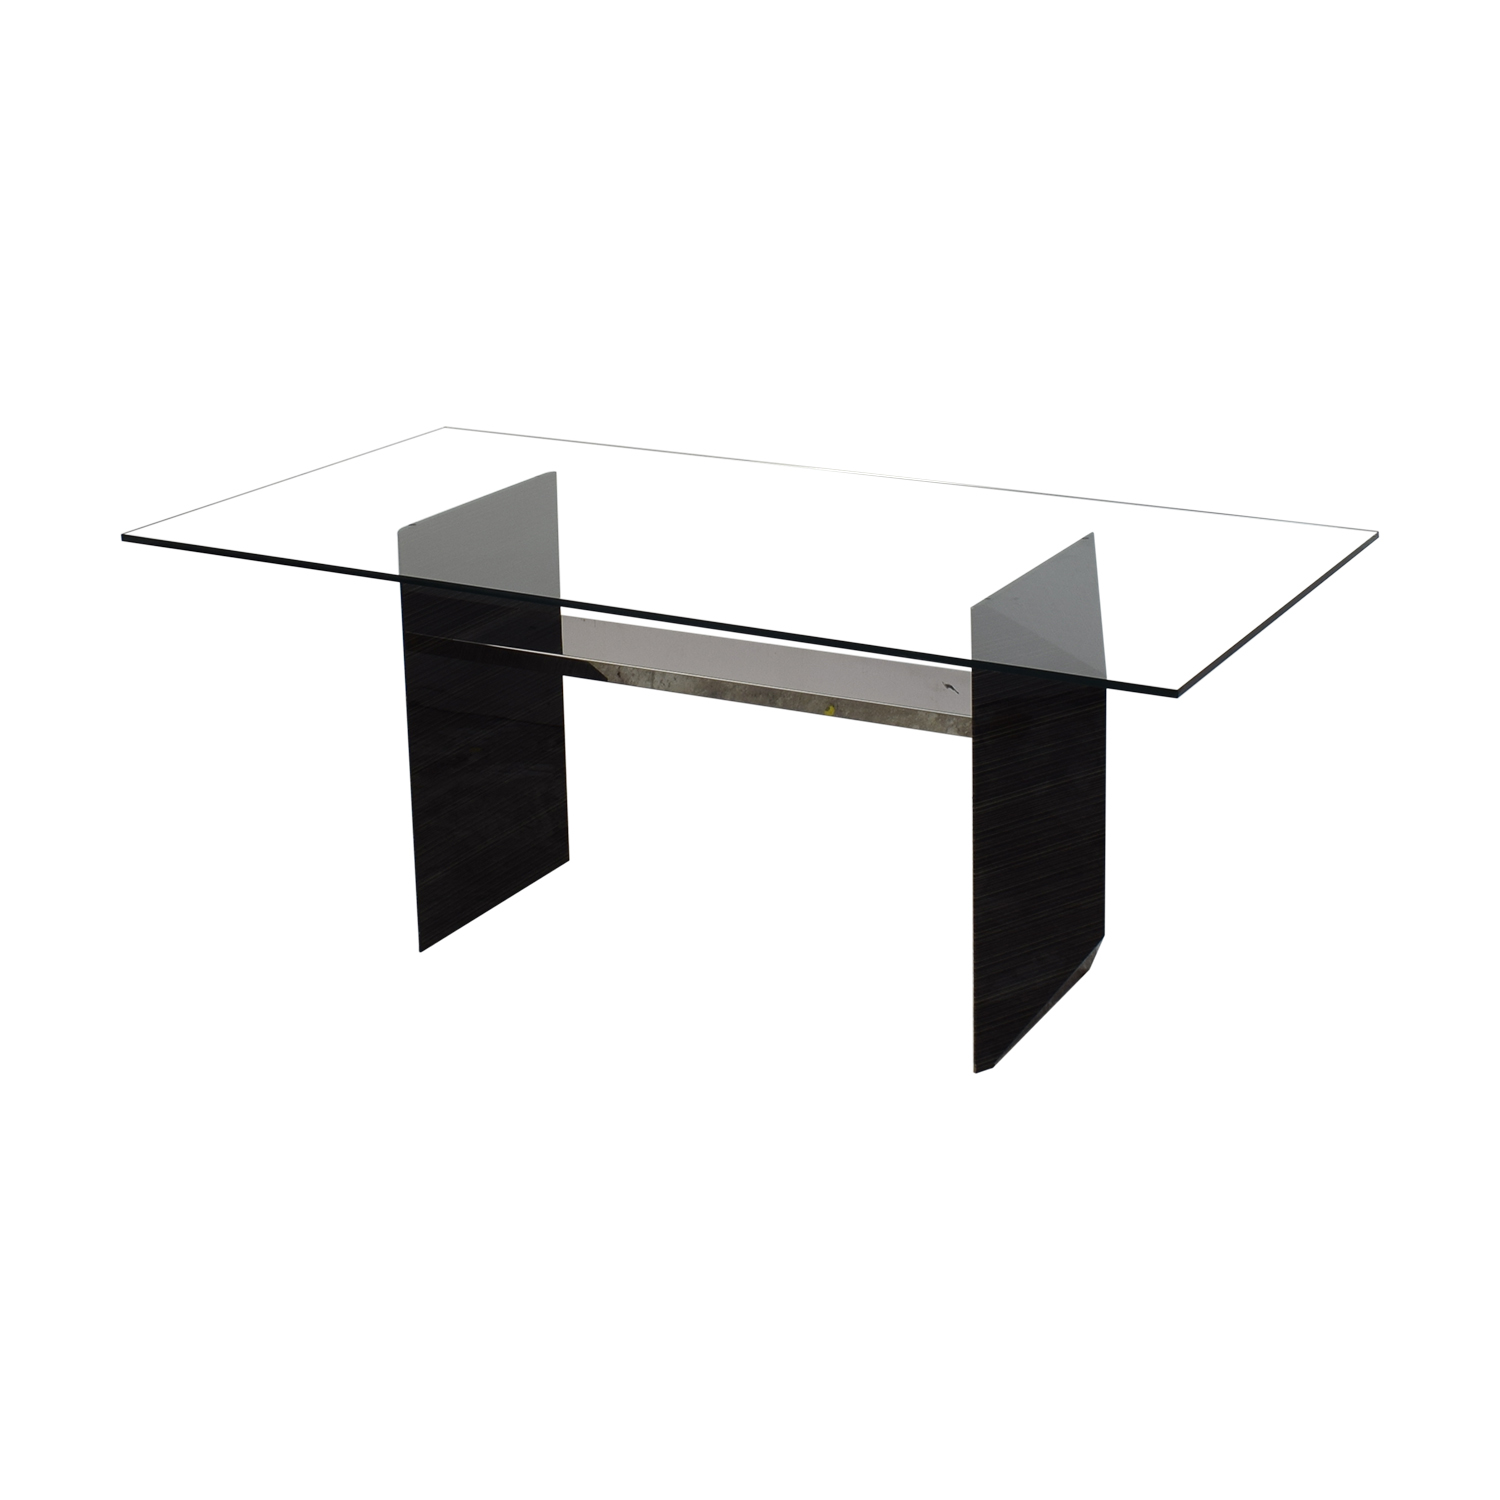 Rossetto Rossetto Minimalist Dining Table Tables